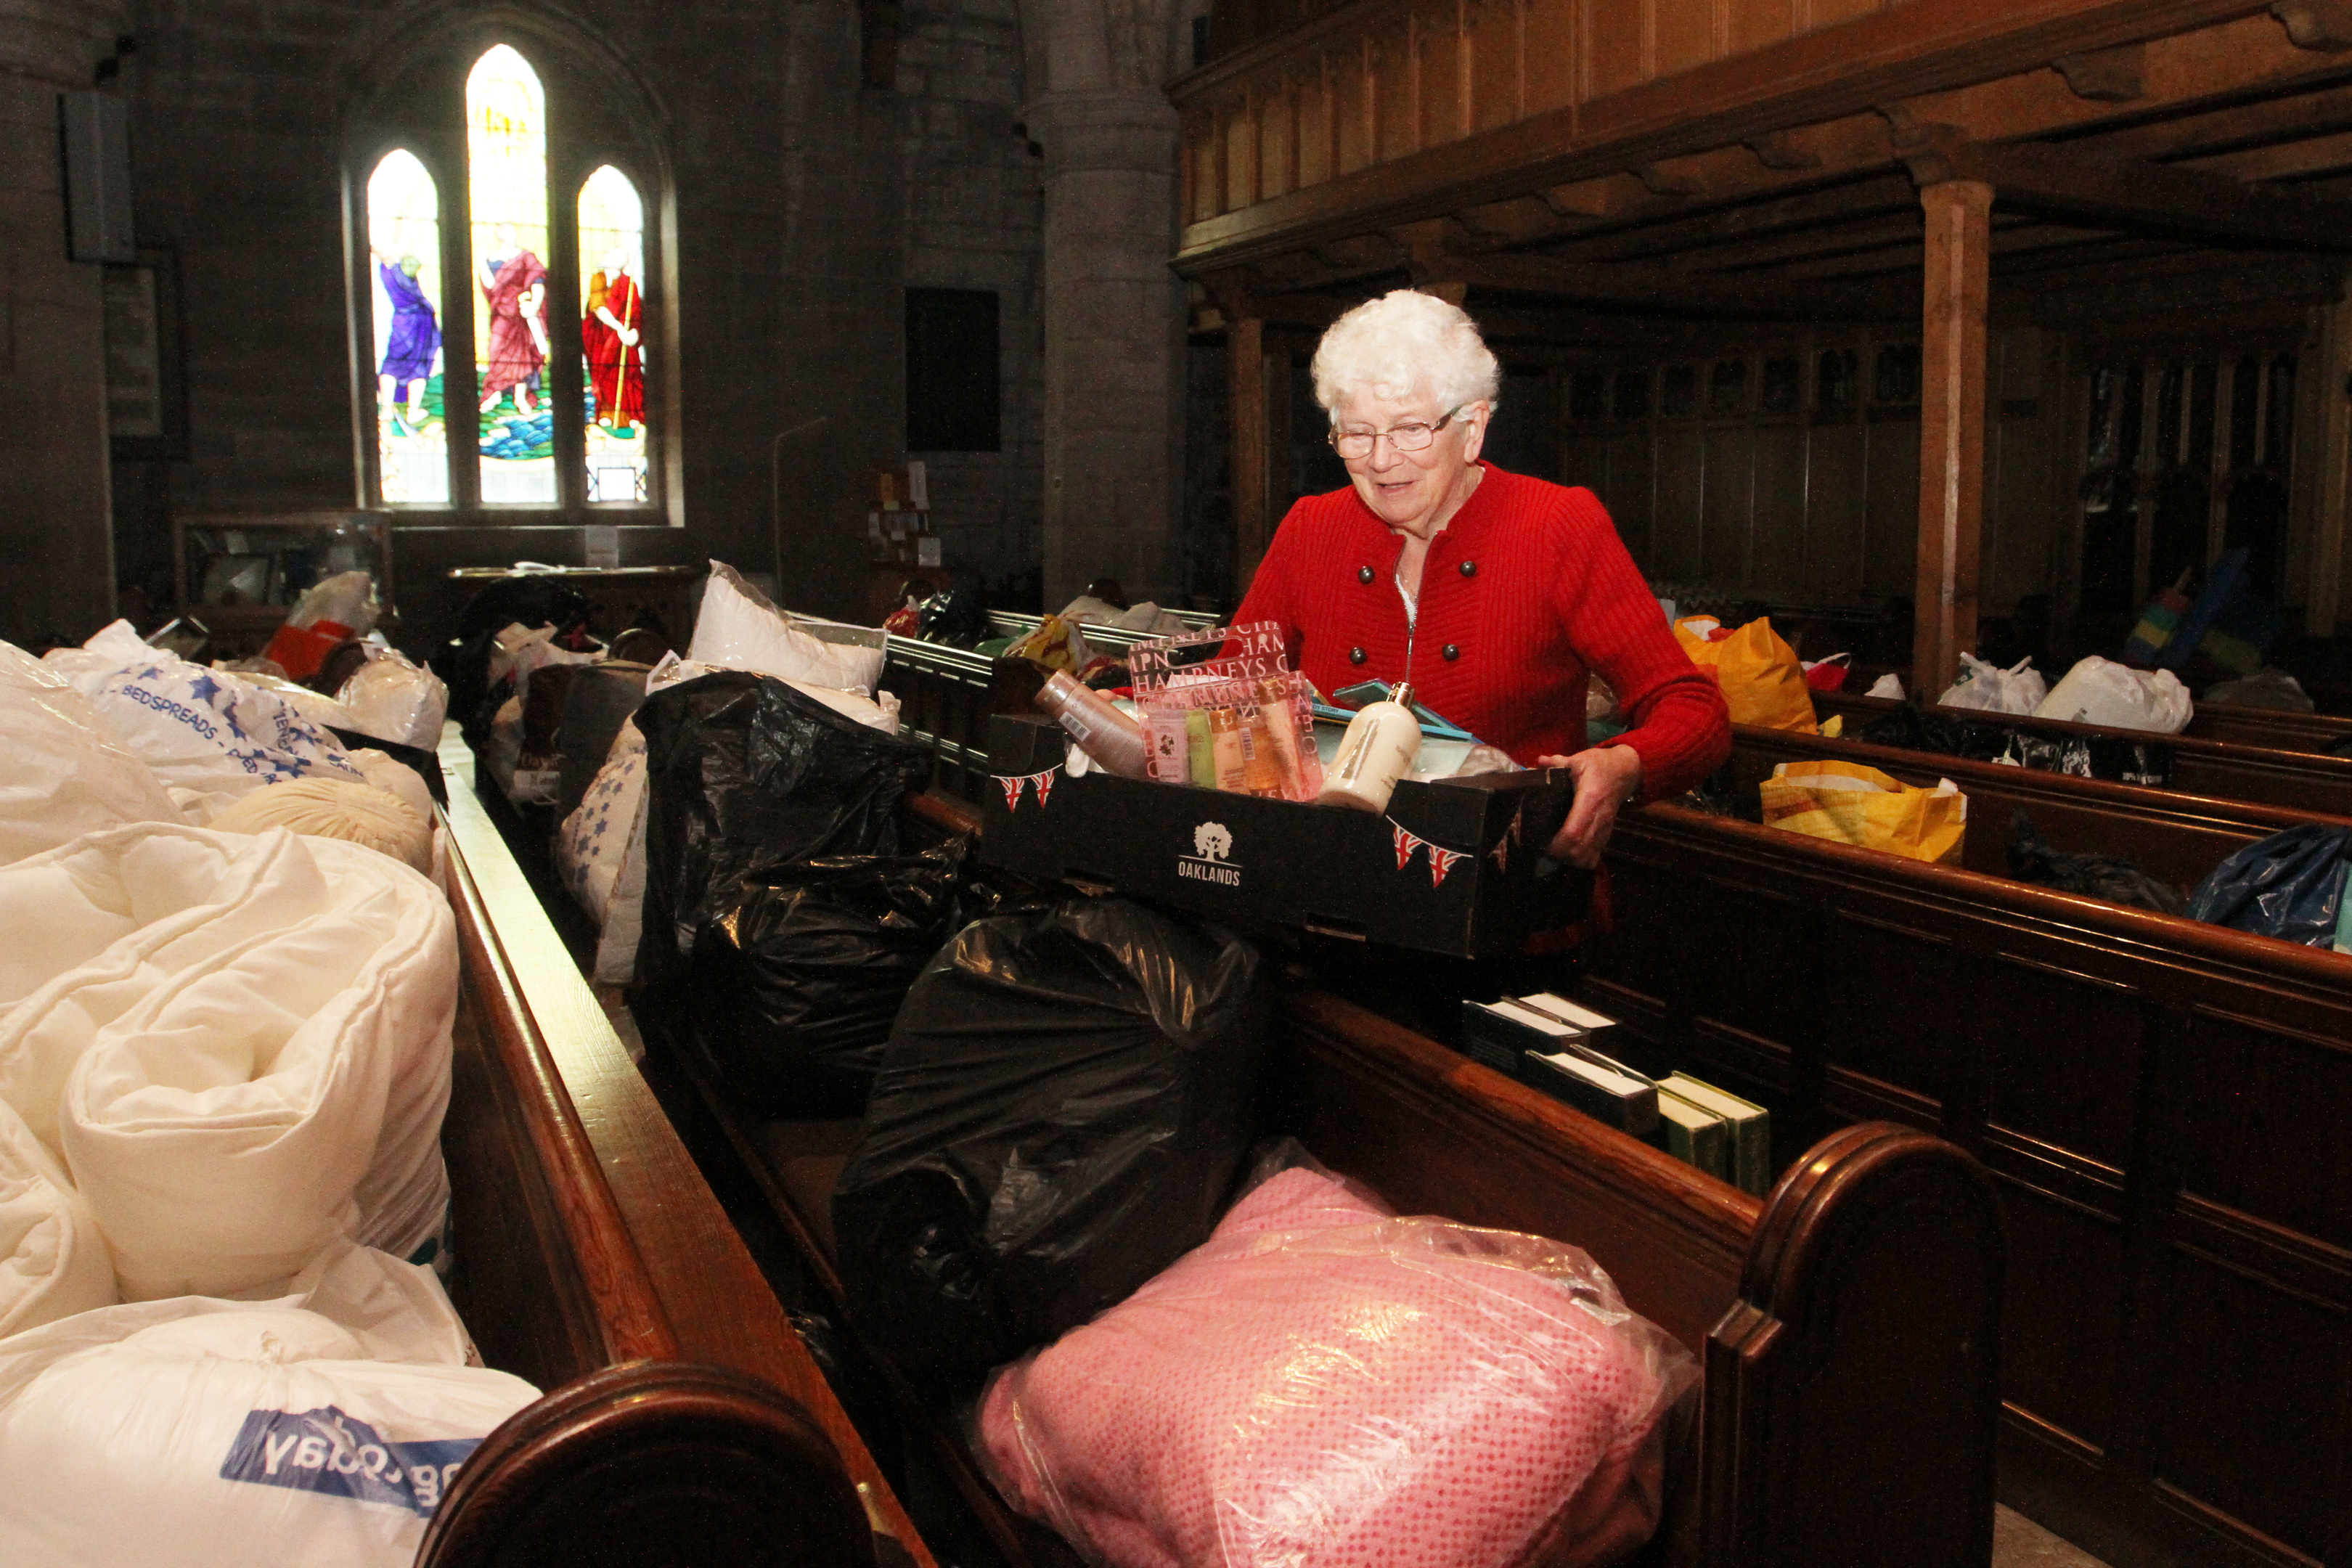 Irene Gillies with some of the donations at Brechin cathedral